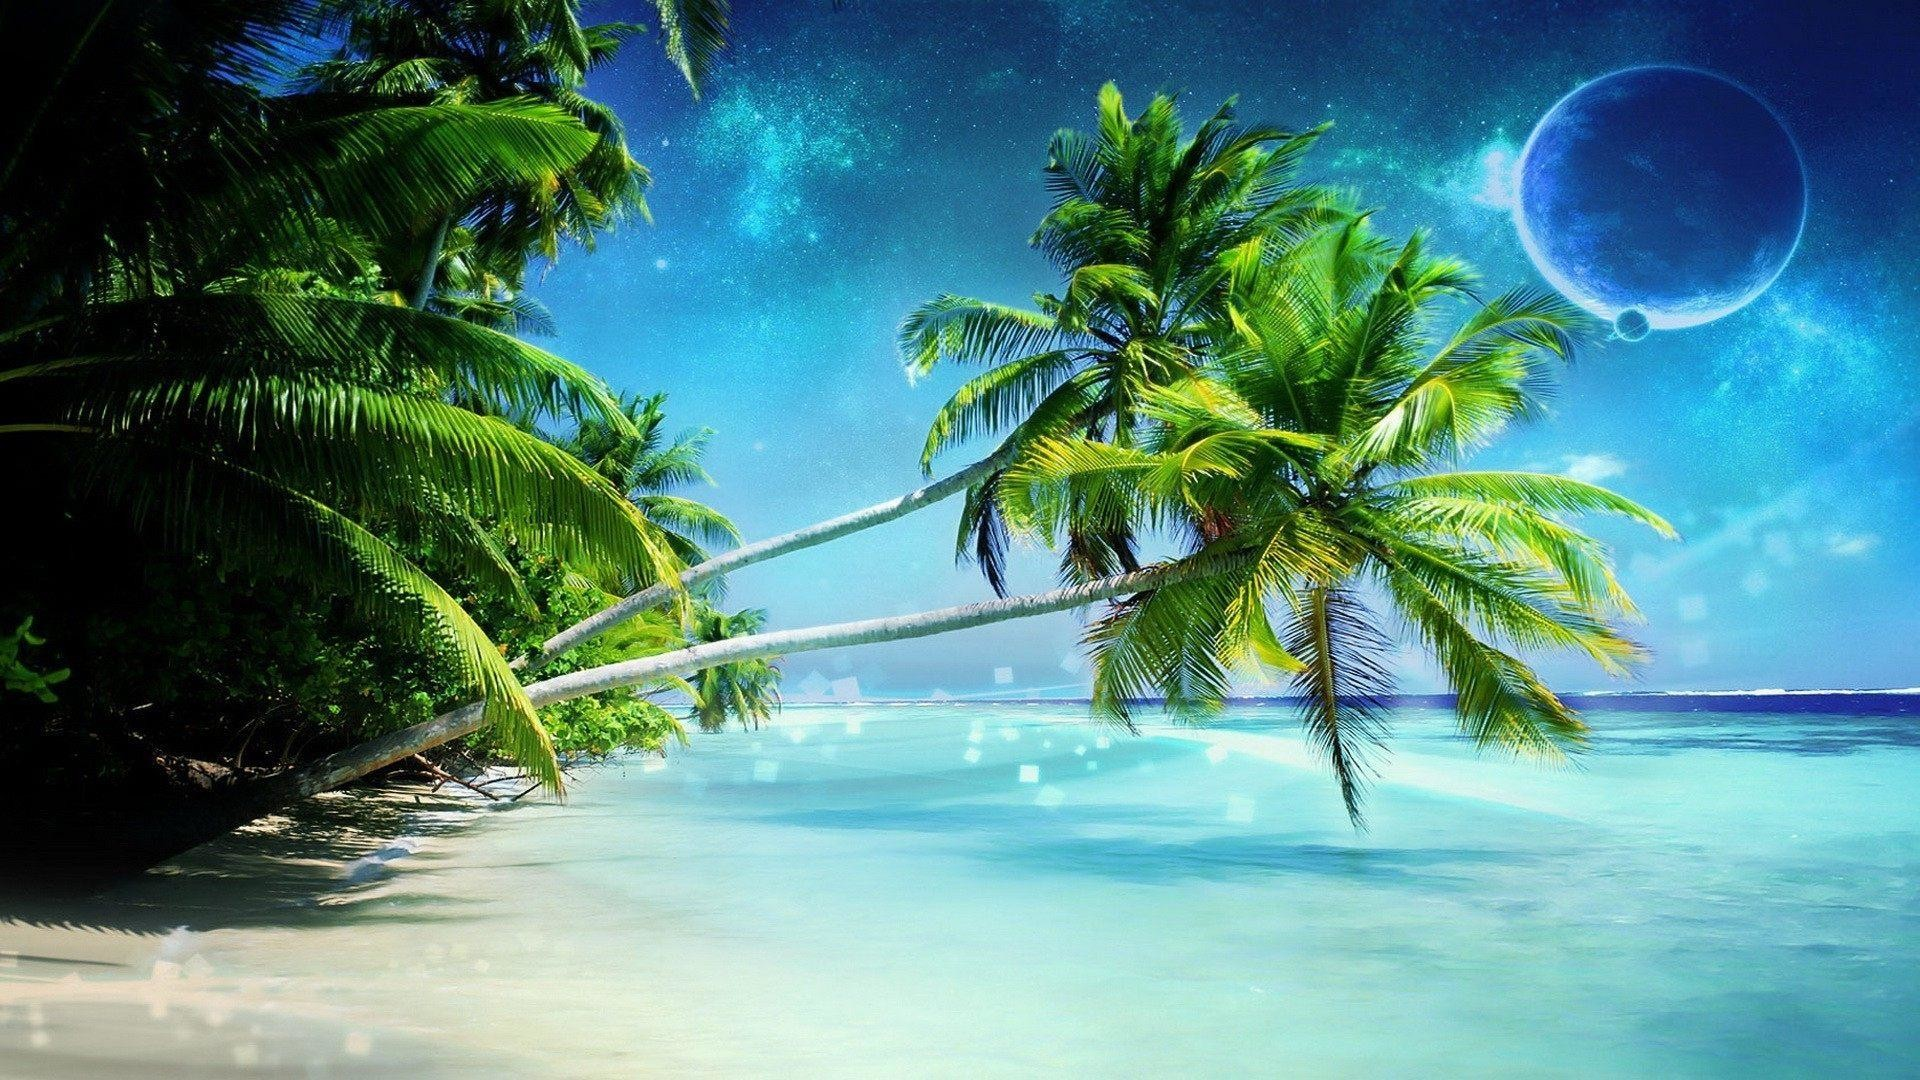 1920x1080 Palm Tree Wallpapers Wallpaper × Pictures Of Palm Trees